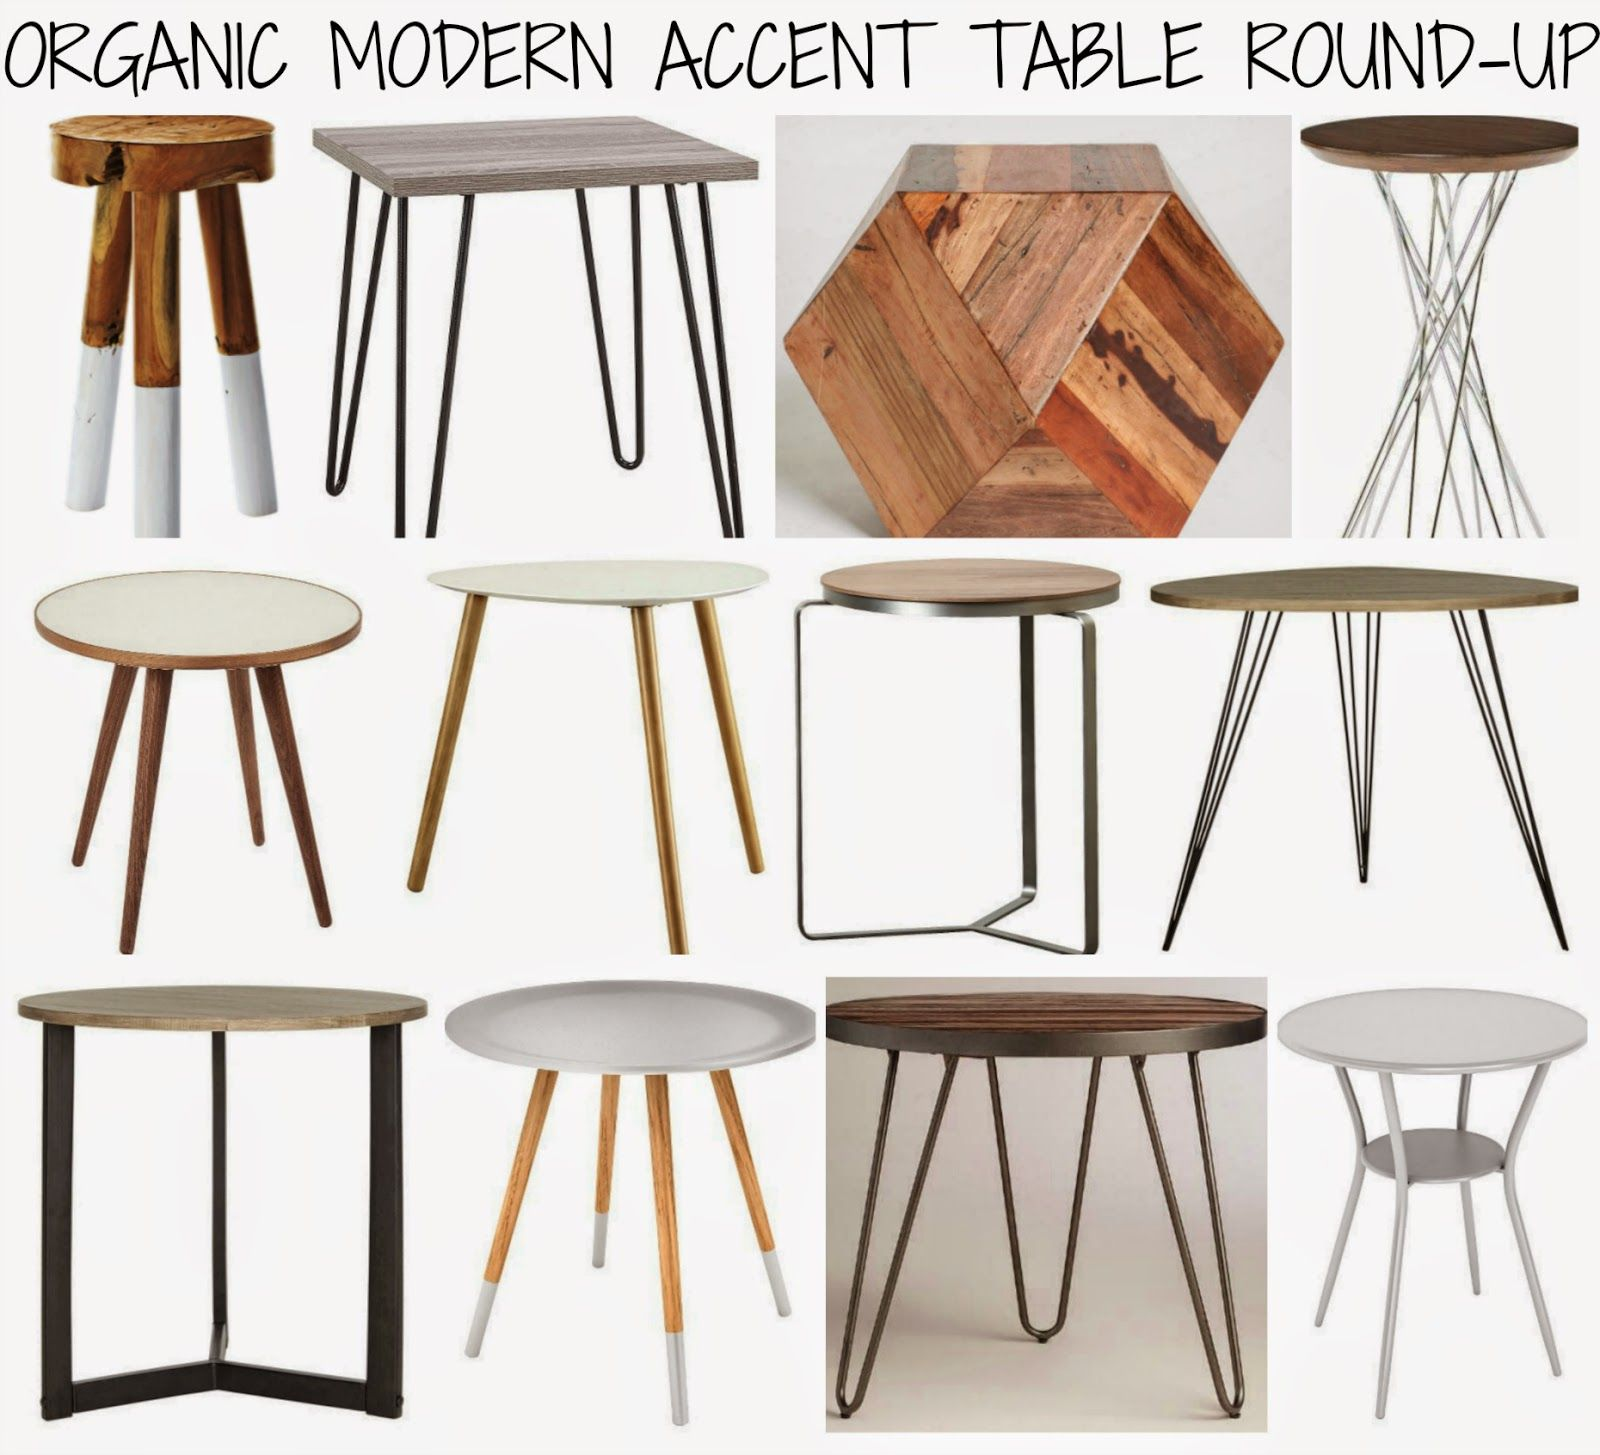 affordable accent table round-up: mid century meets organic modern